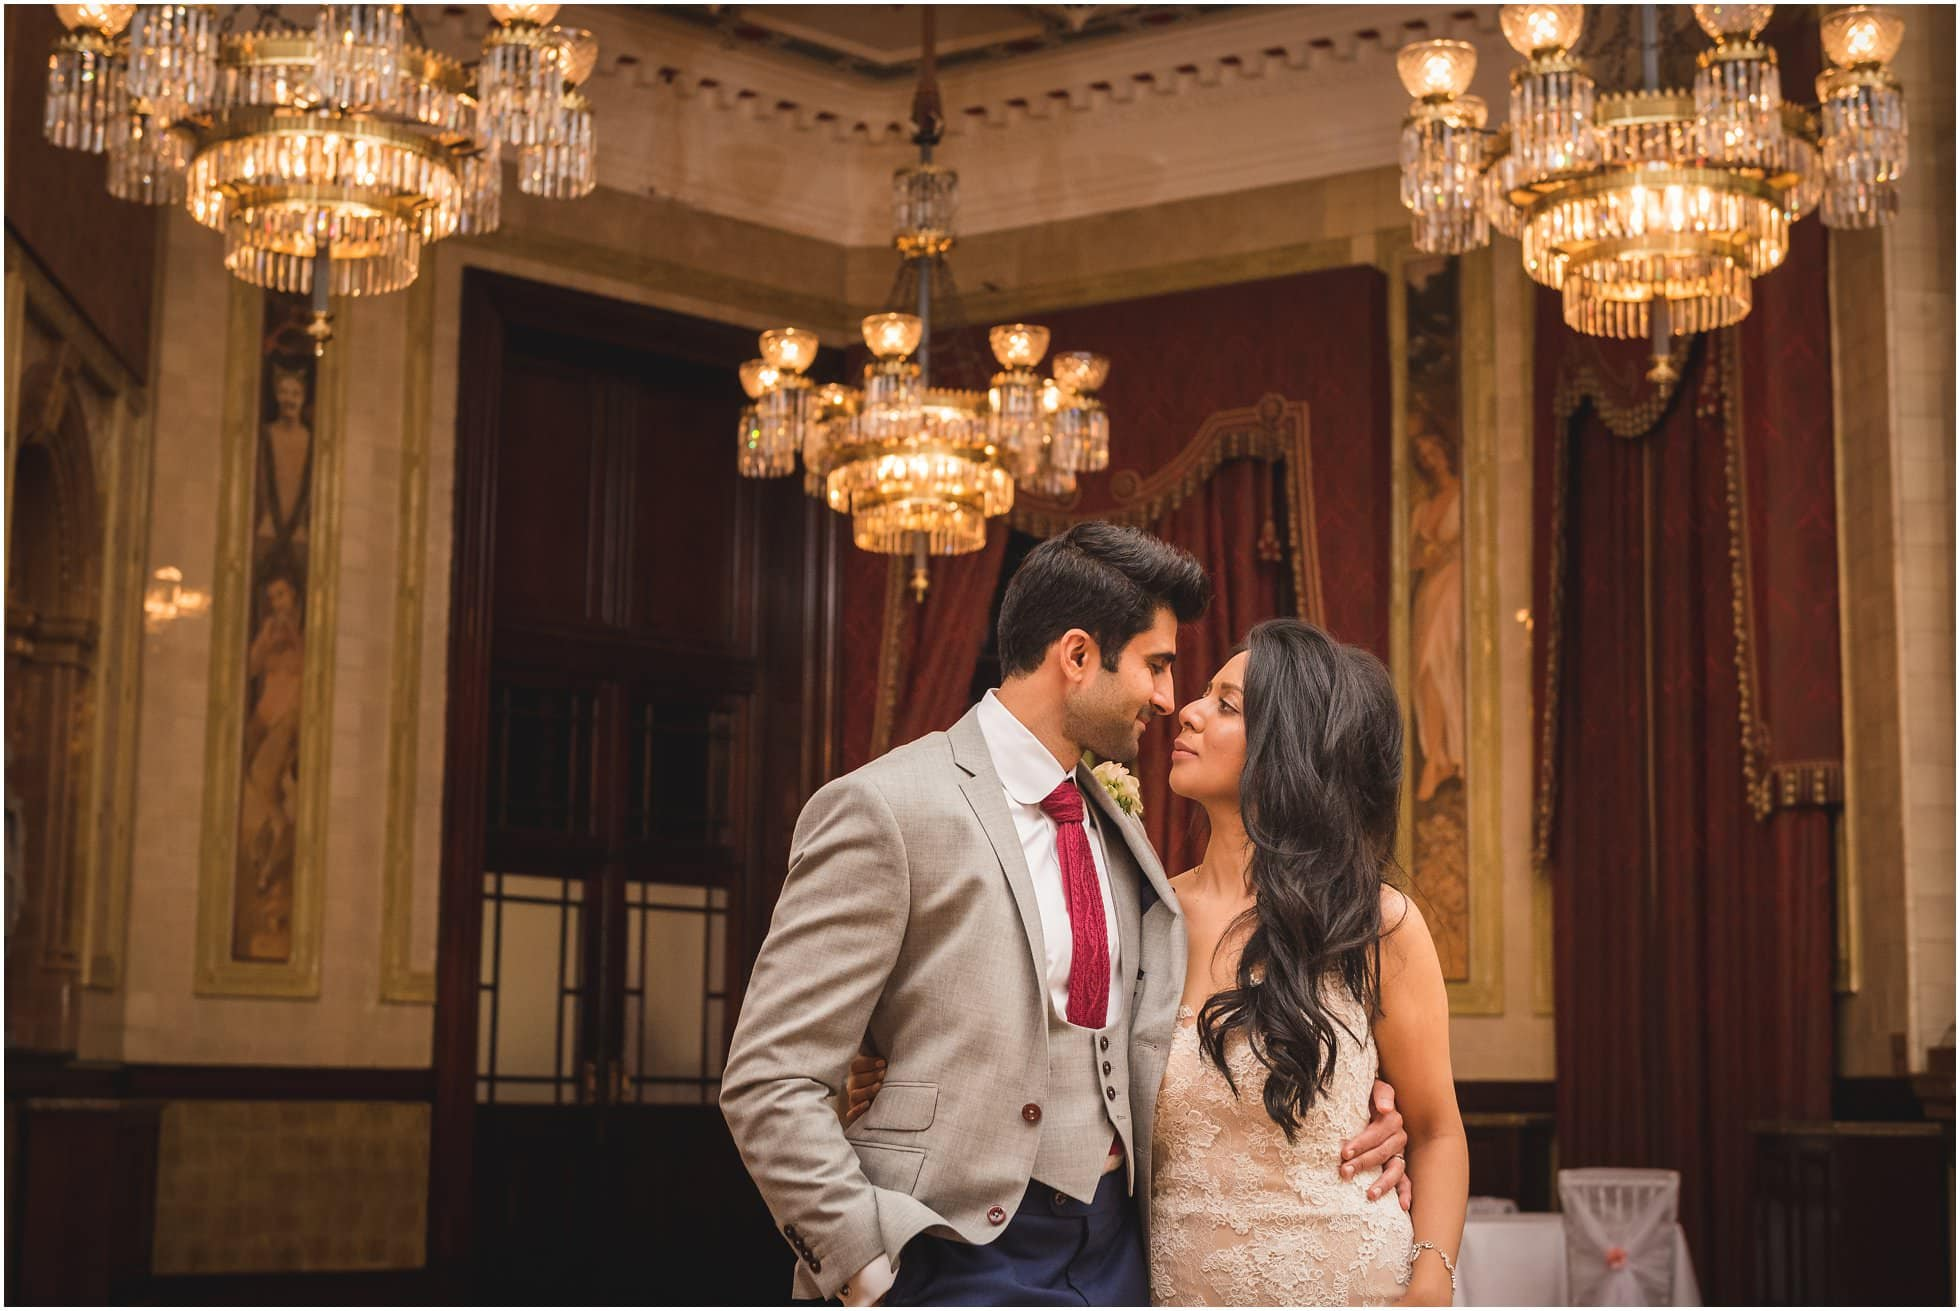 One Whitehall Place Wedding Photographer showing what the Reading and Writing Room can look like